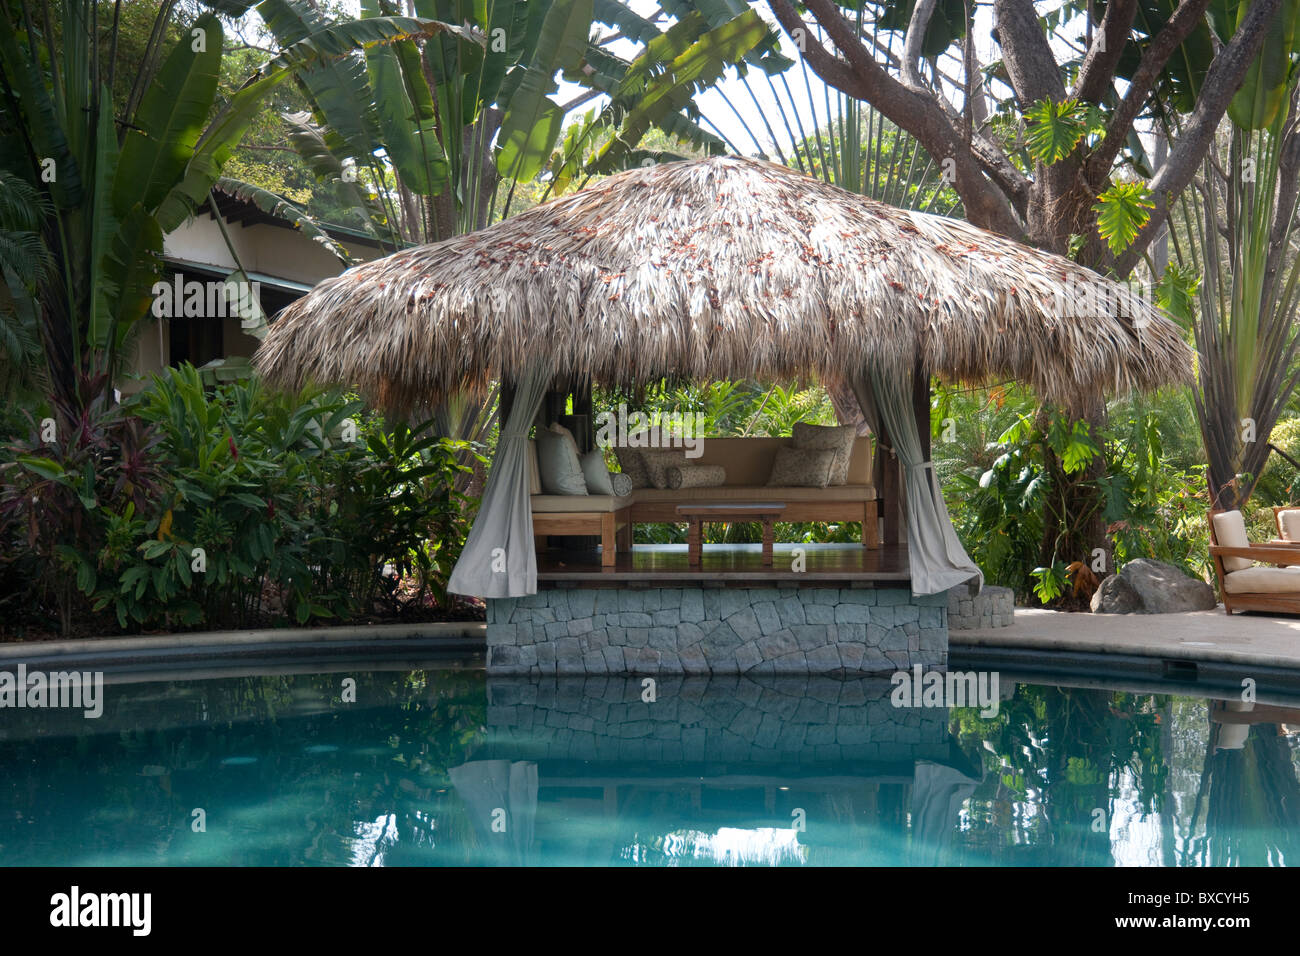 Open Sided Poolside Cabana With Palm Leaf Roof And Sofa Lounge